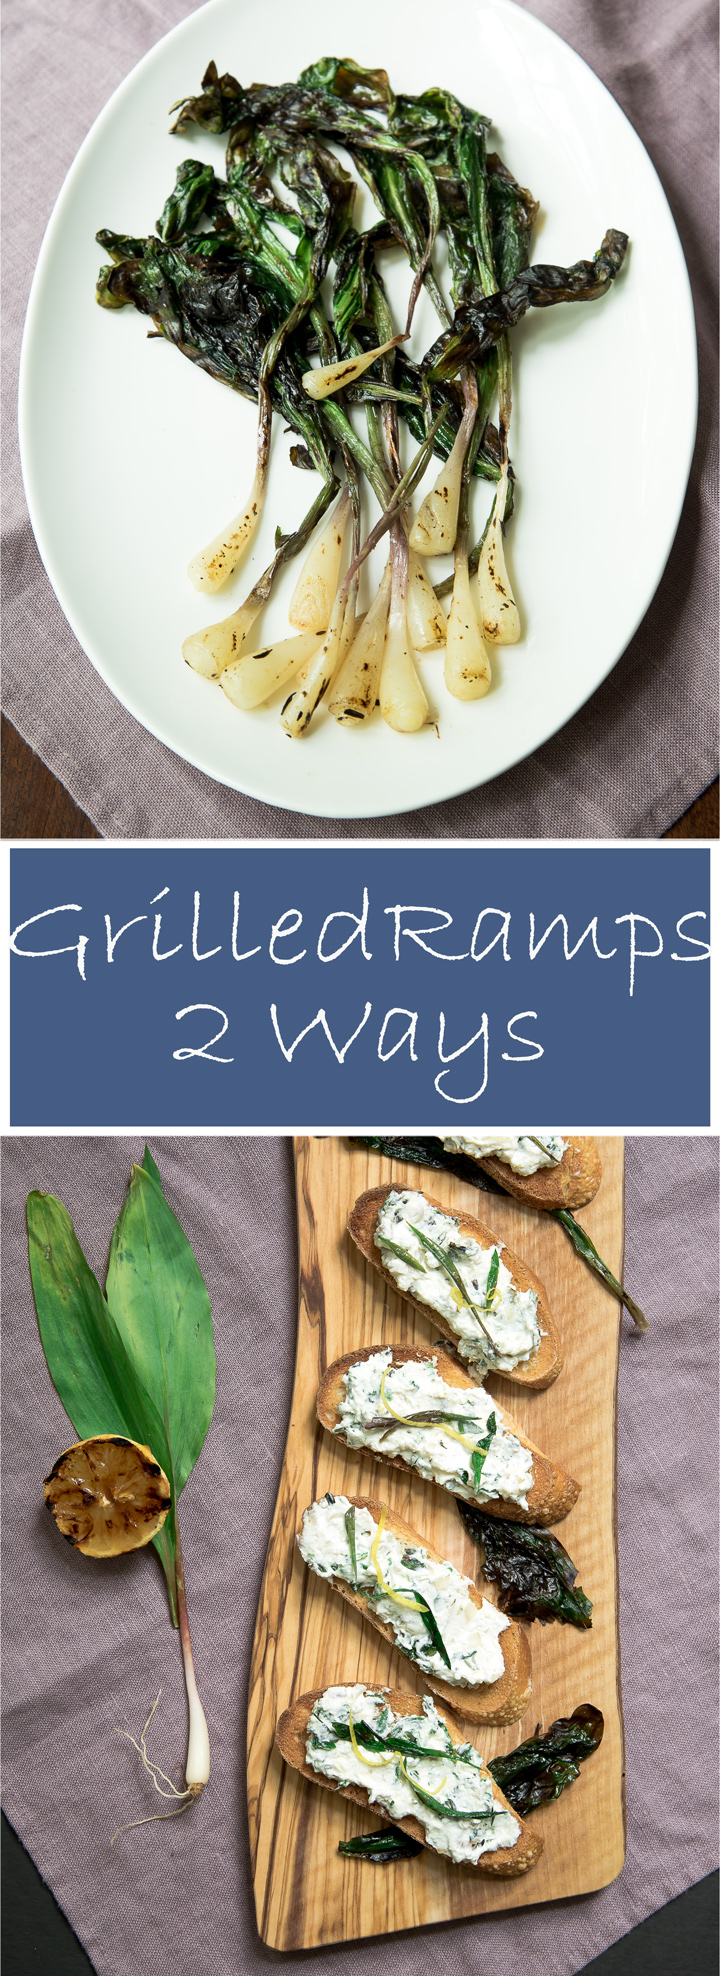 Grilled Ramps: Two Ways. 2 recipes in one. Grilled ramps are delicious by themselves or mixed with other ingredients for an appetizer. You can eat grilled ramps just as they are or mix with fresh ricotta smeared on toasted French bread for a terrific appetizer.